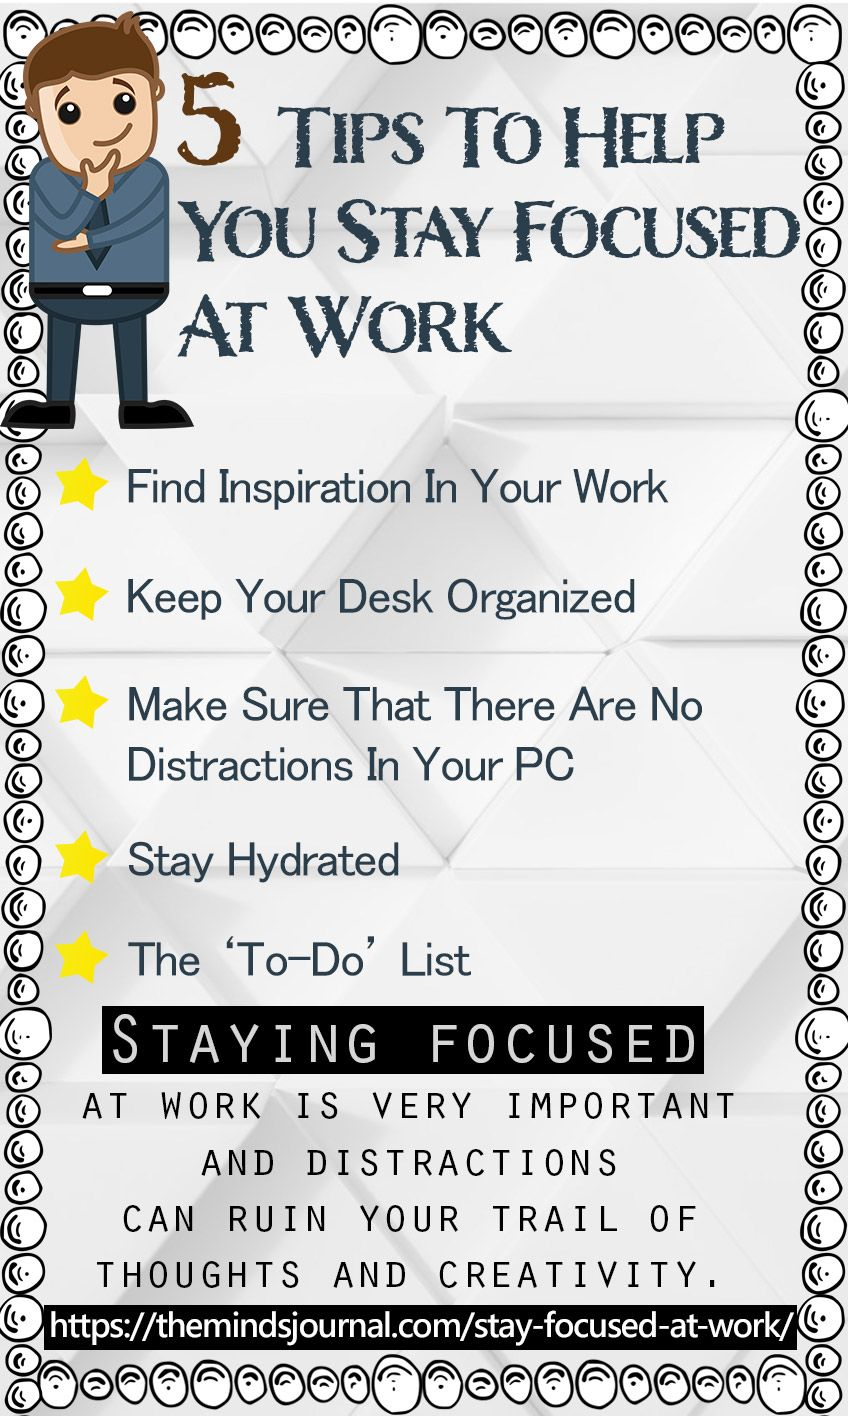 5 Simple and Sureshot Ways To Help You Stay Focused At